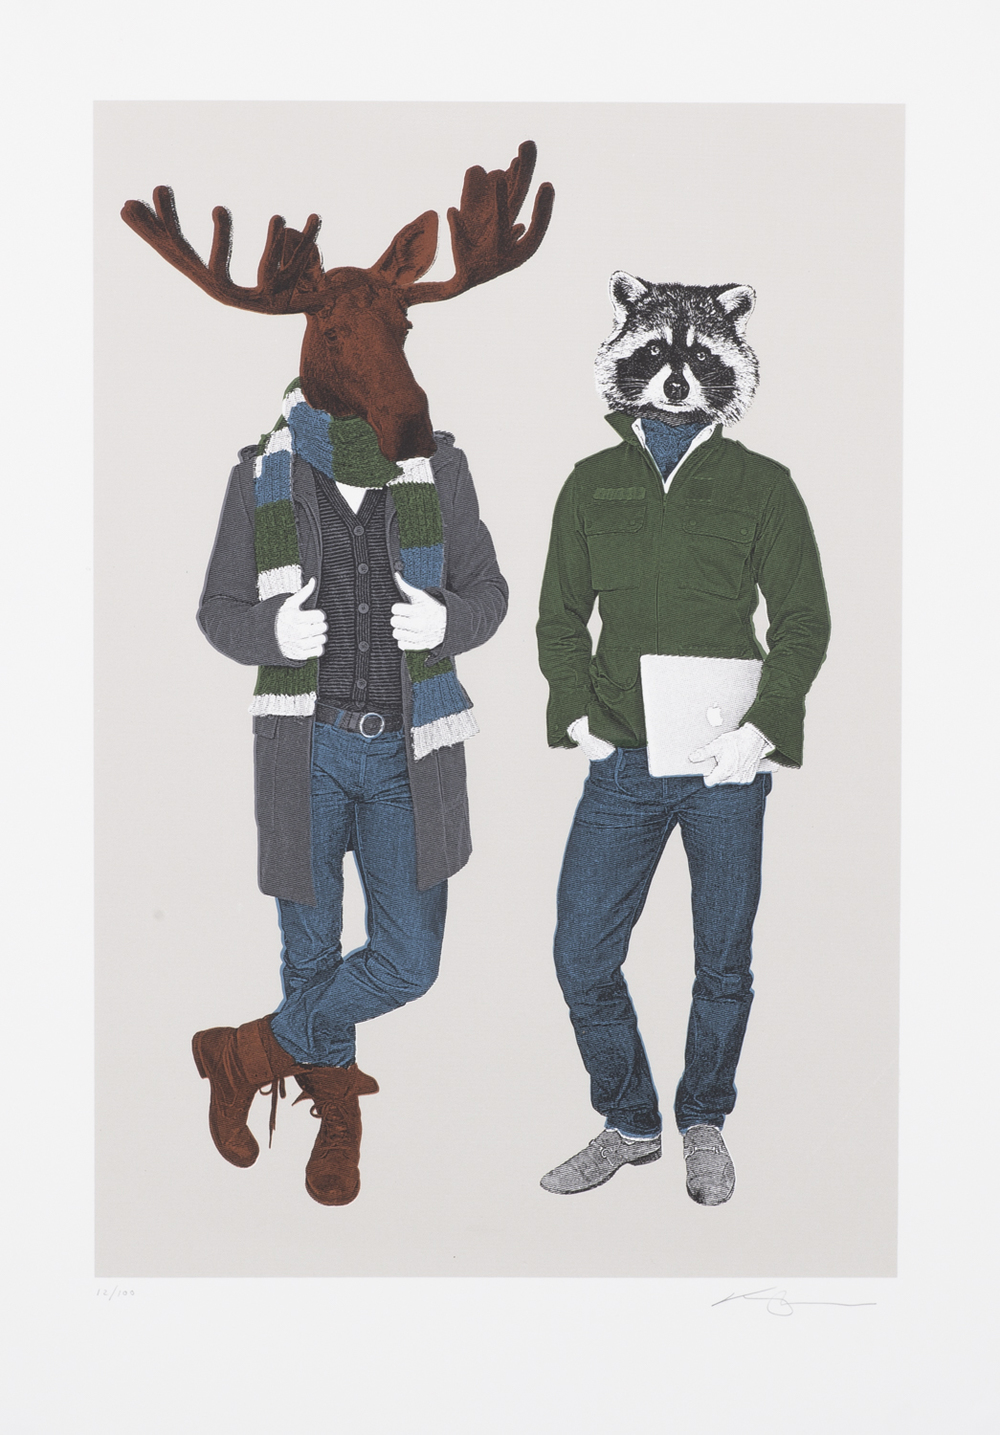 The Moose & Racoon